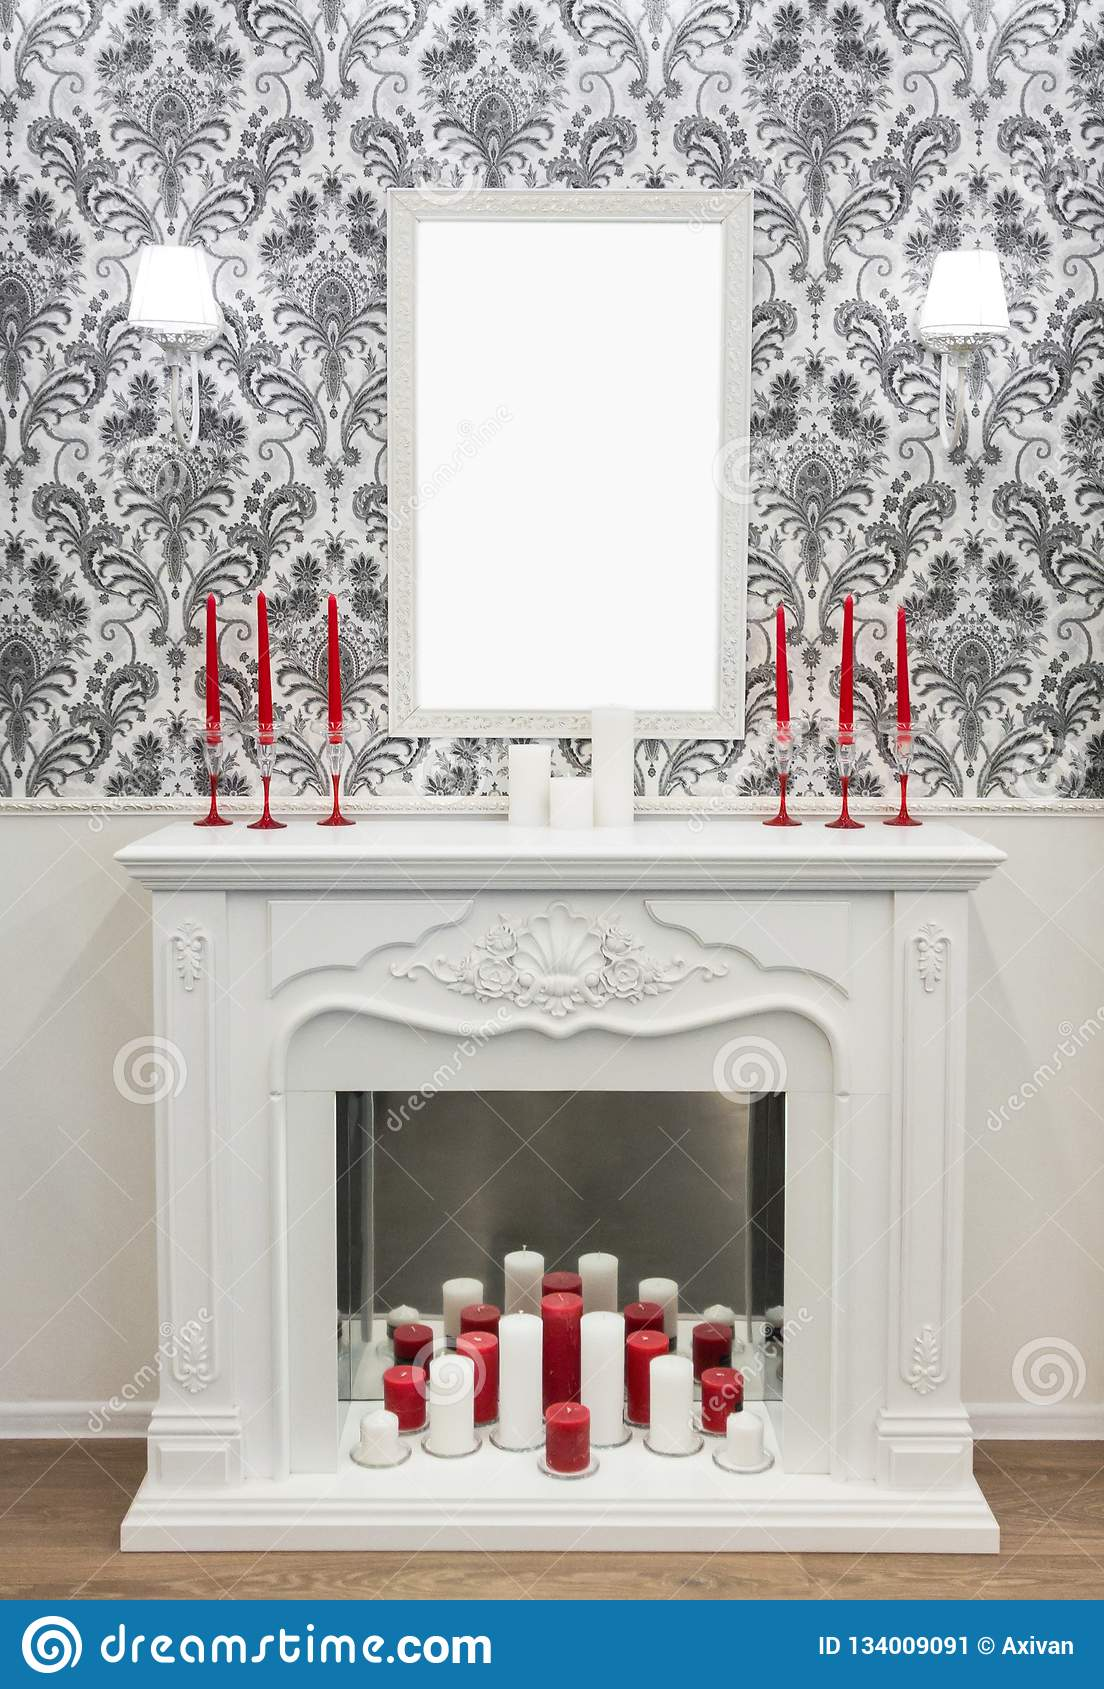 Decoration Placed On Top Of Fireplace Candles Lamp Blank